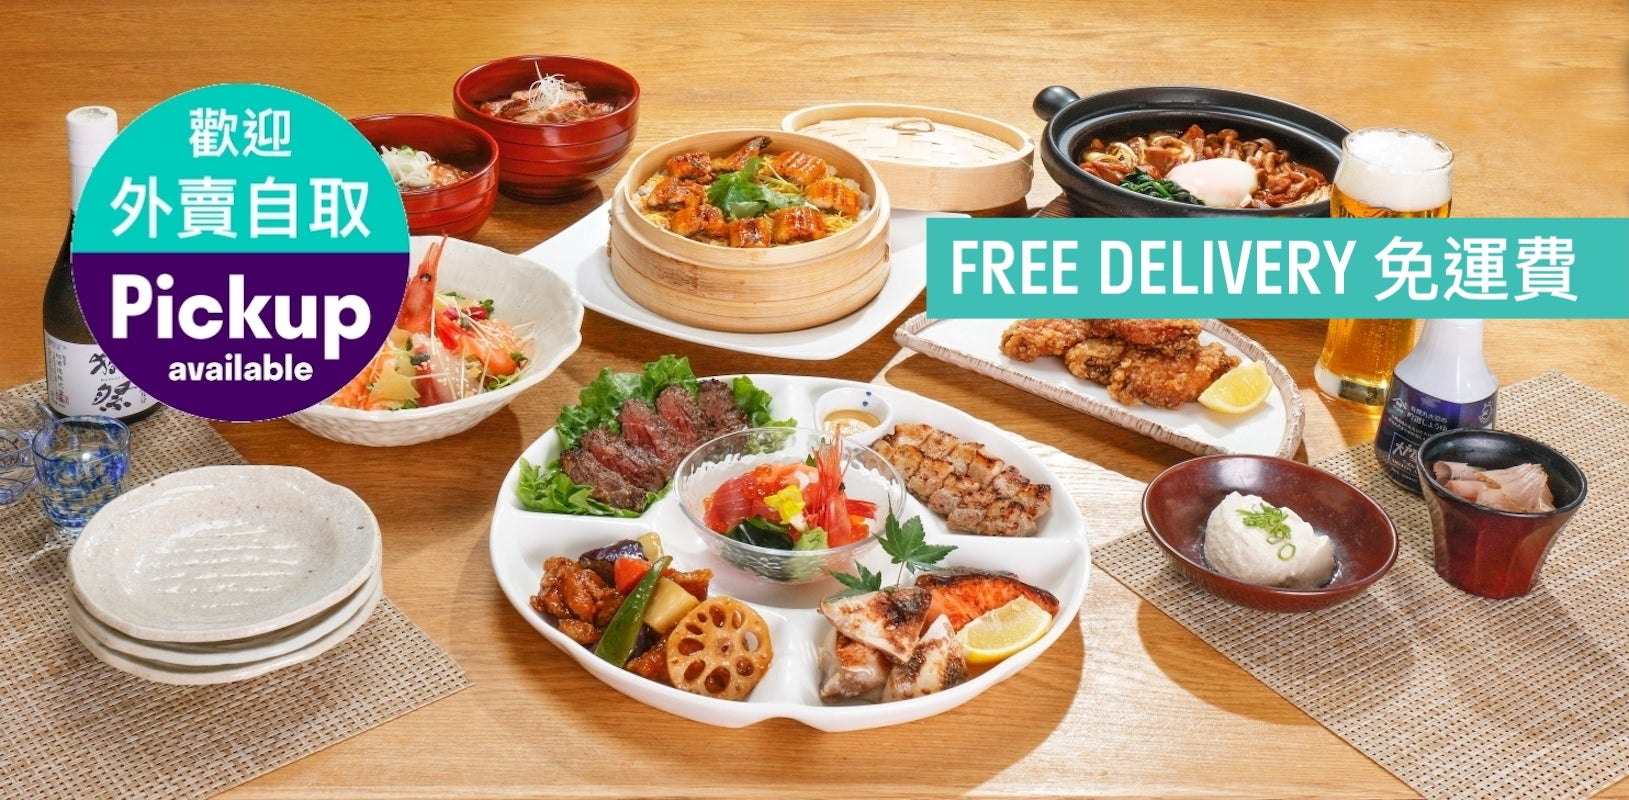 Ootoya 大戶屋 delivery from Cheung Sha Wan - Order with Deliveroo